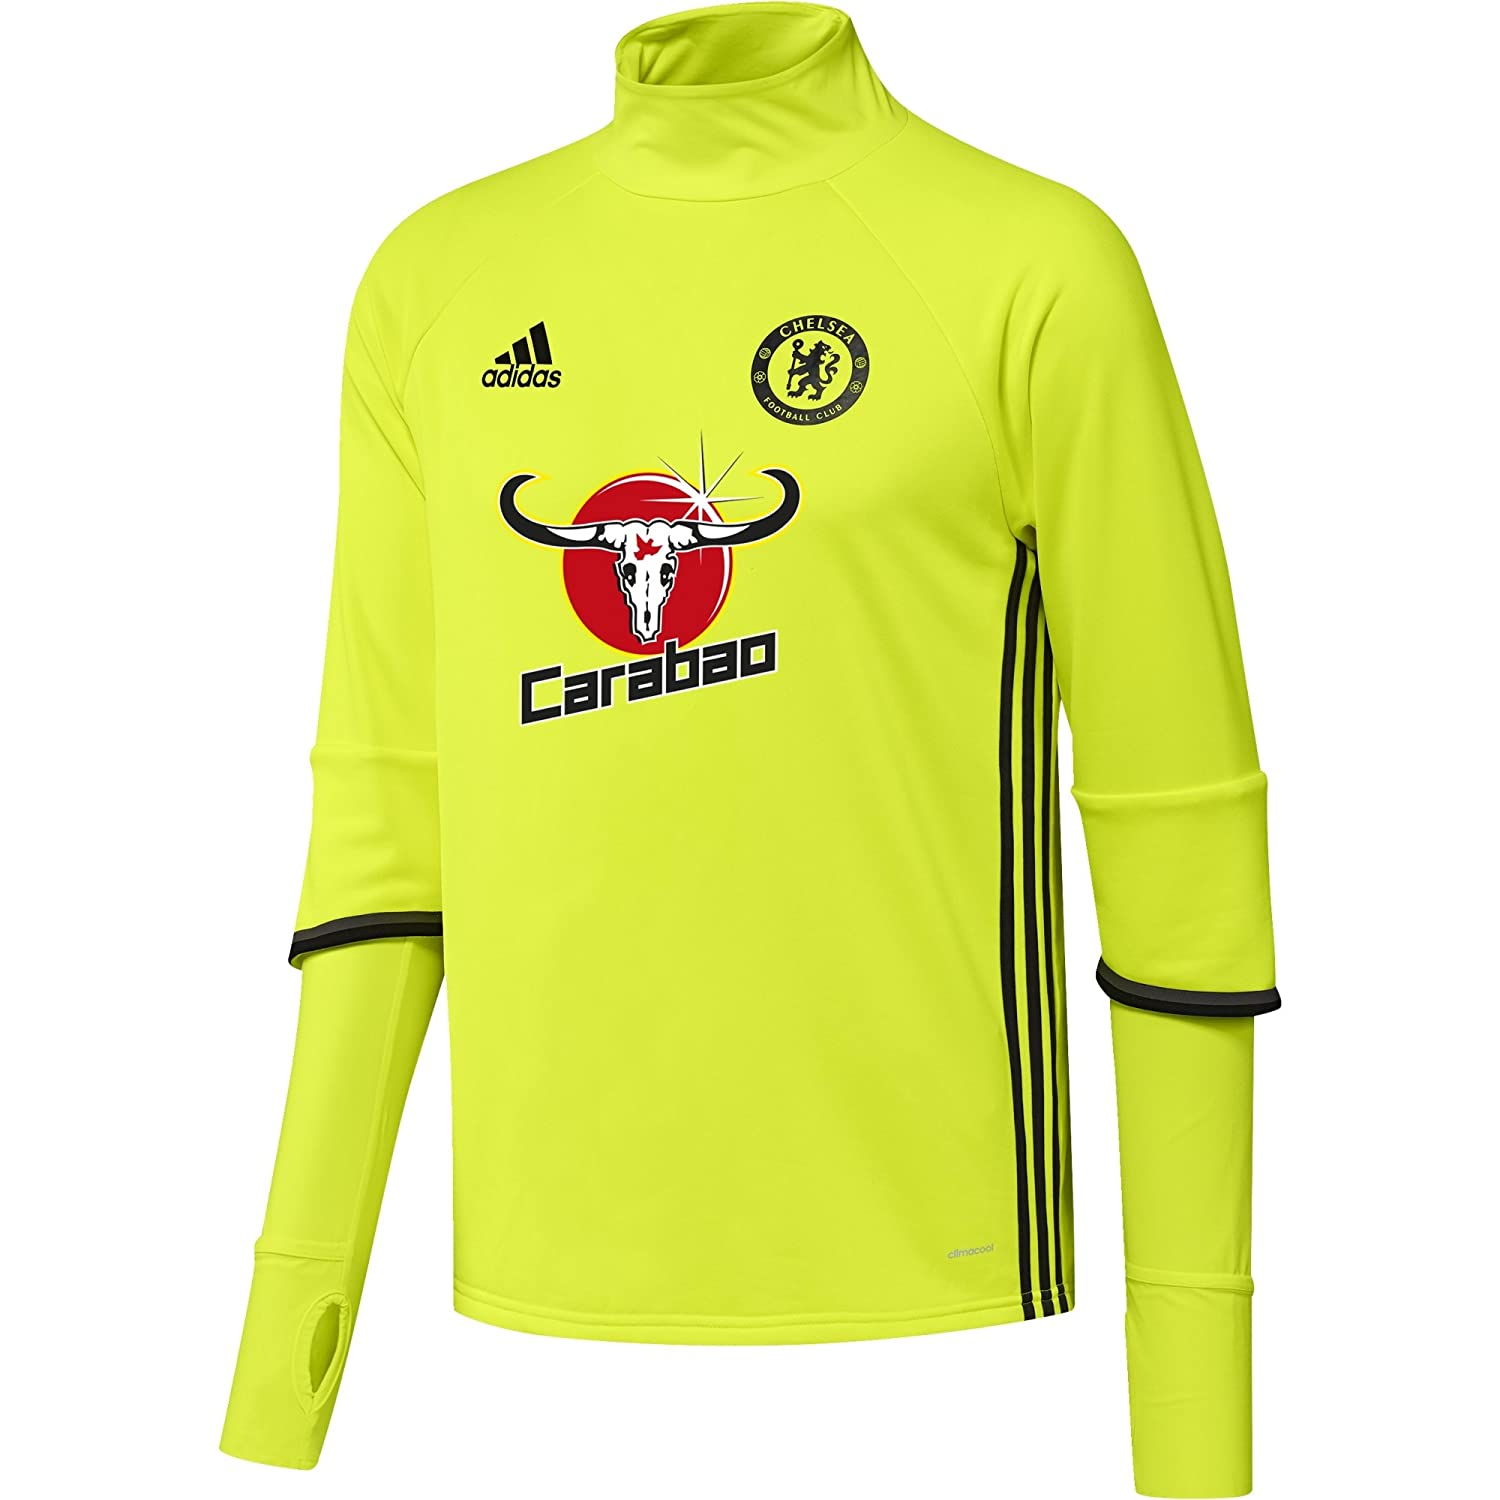 2016-2017 Chelsea Adidas Training Top (Yellow) B01HUVJ29G XL 44-46